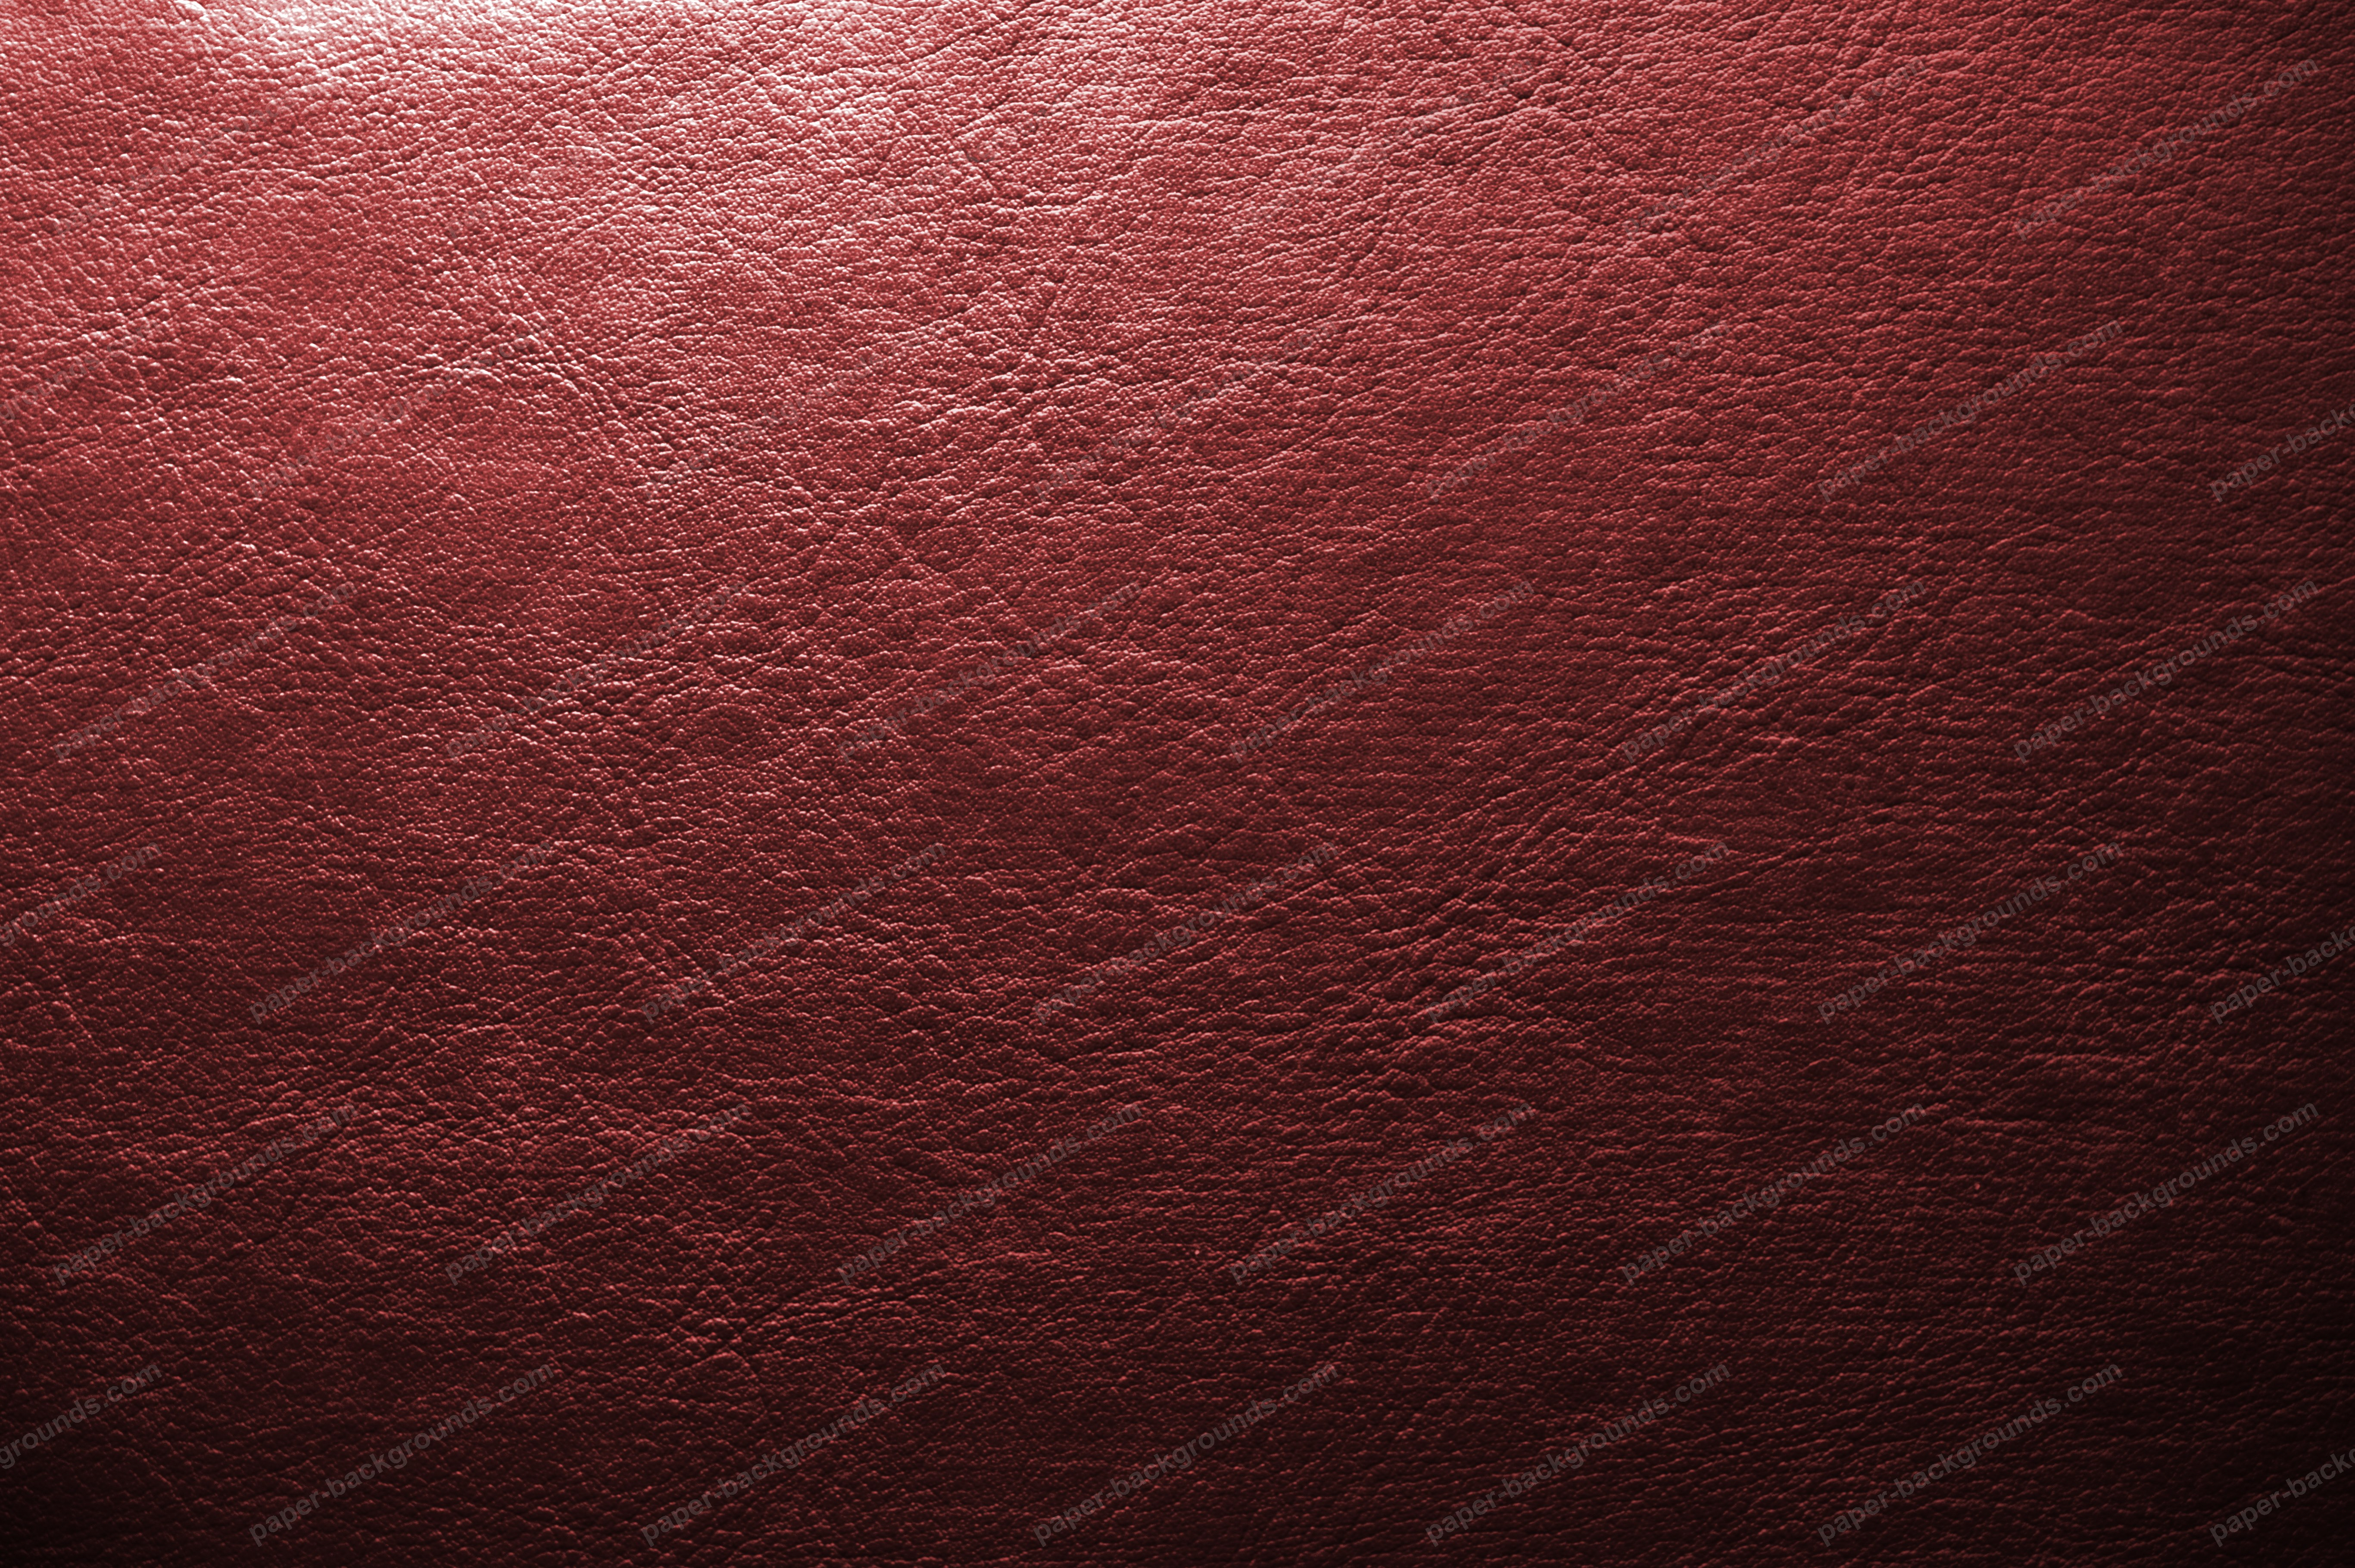 Dark Red Leather Background Stock Photo  Dreamstime